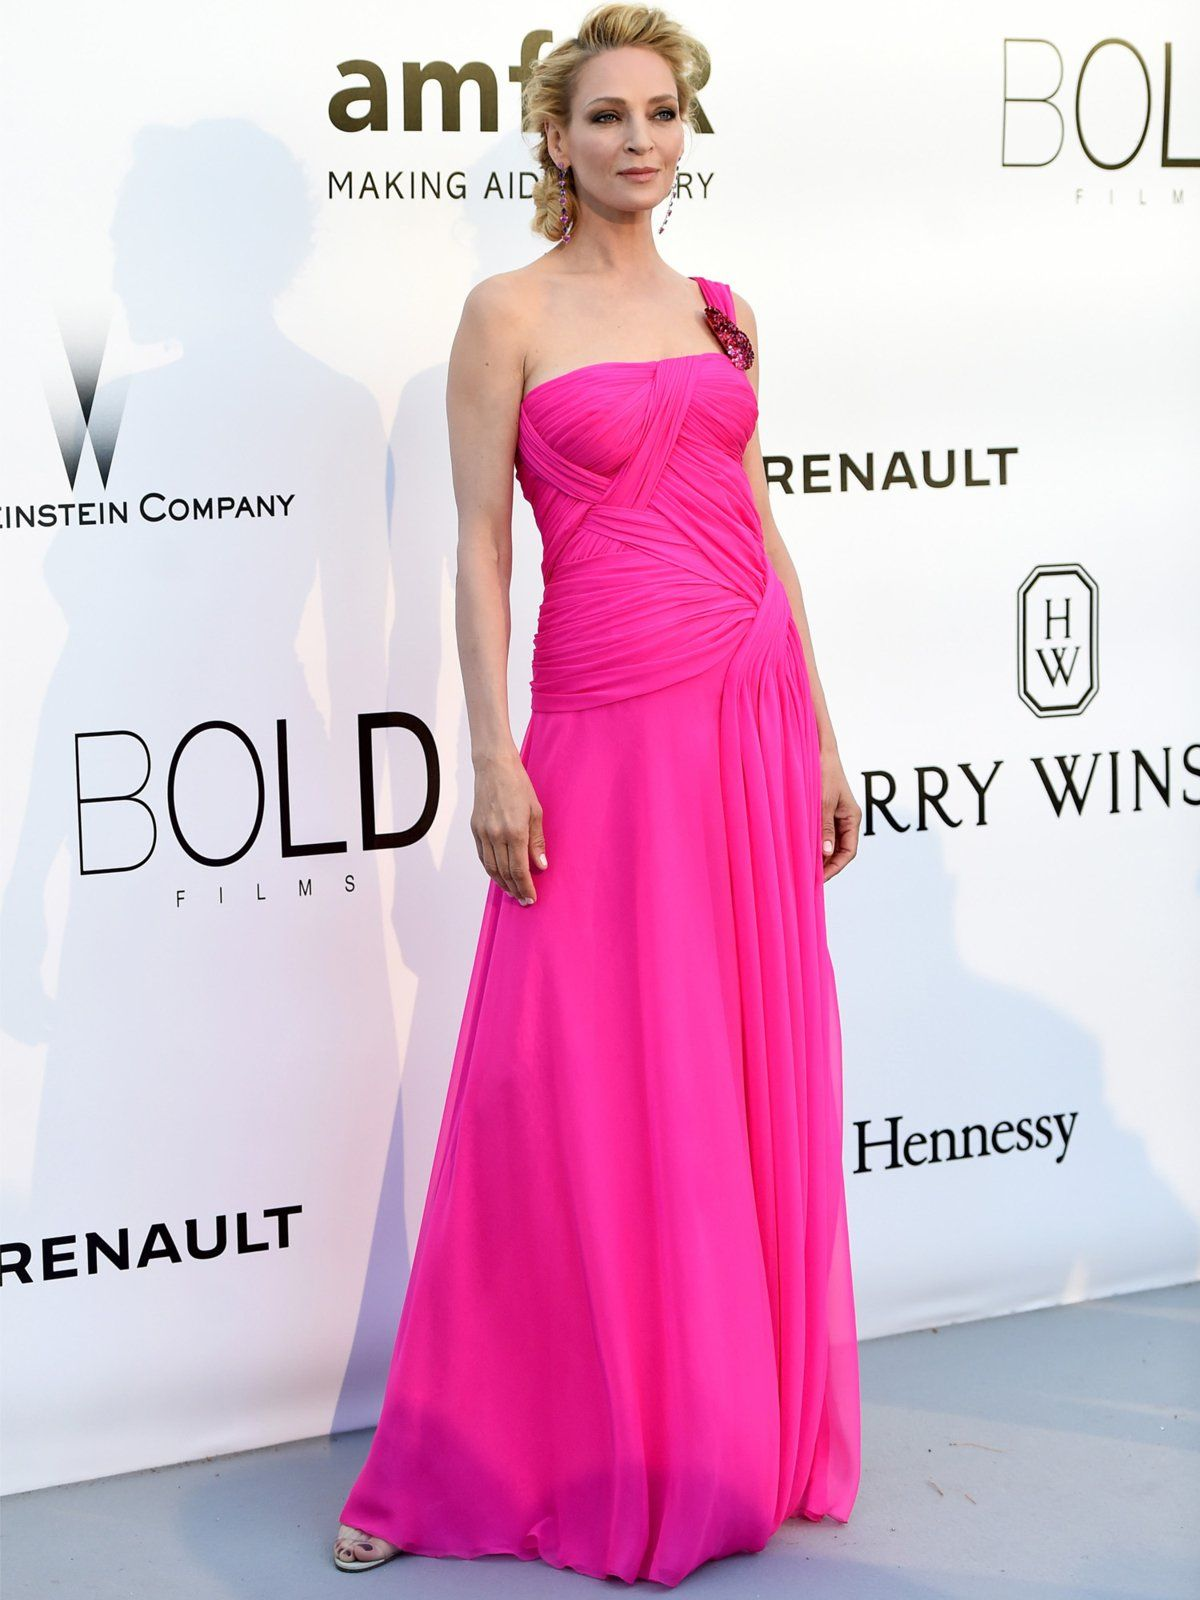 Uma Thurman amfAR Gala in Cannes 2016 | Pinkes kleid, Rote teppiche ...